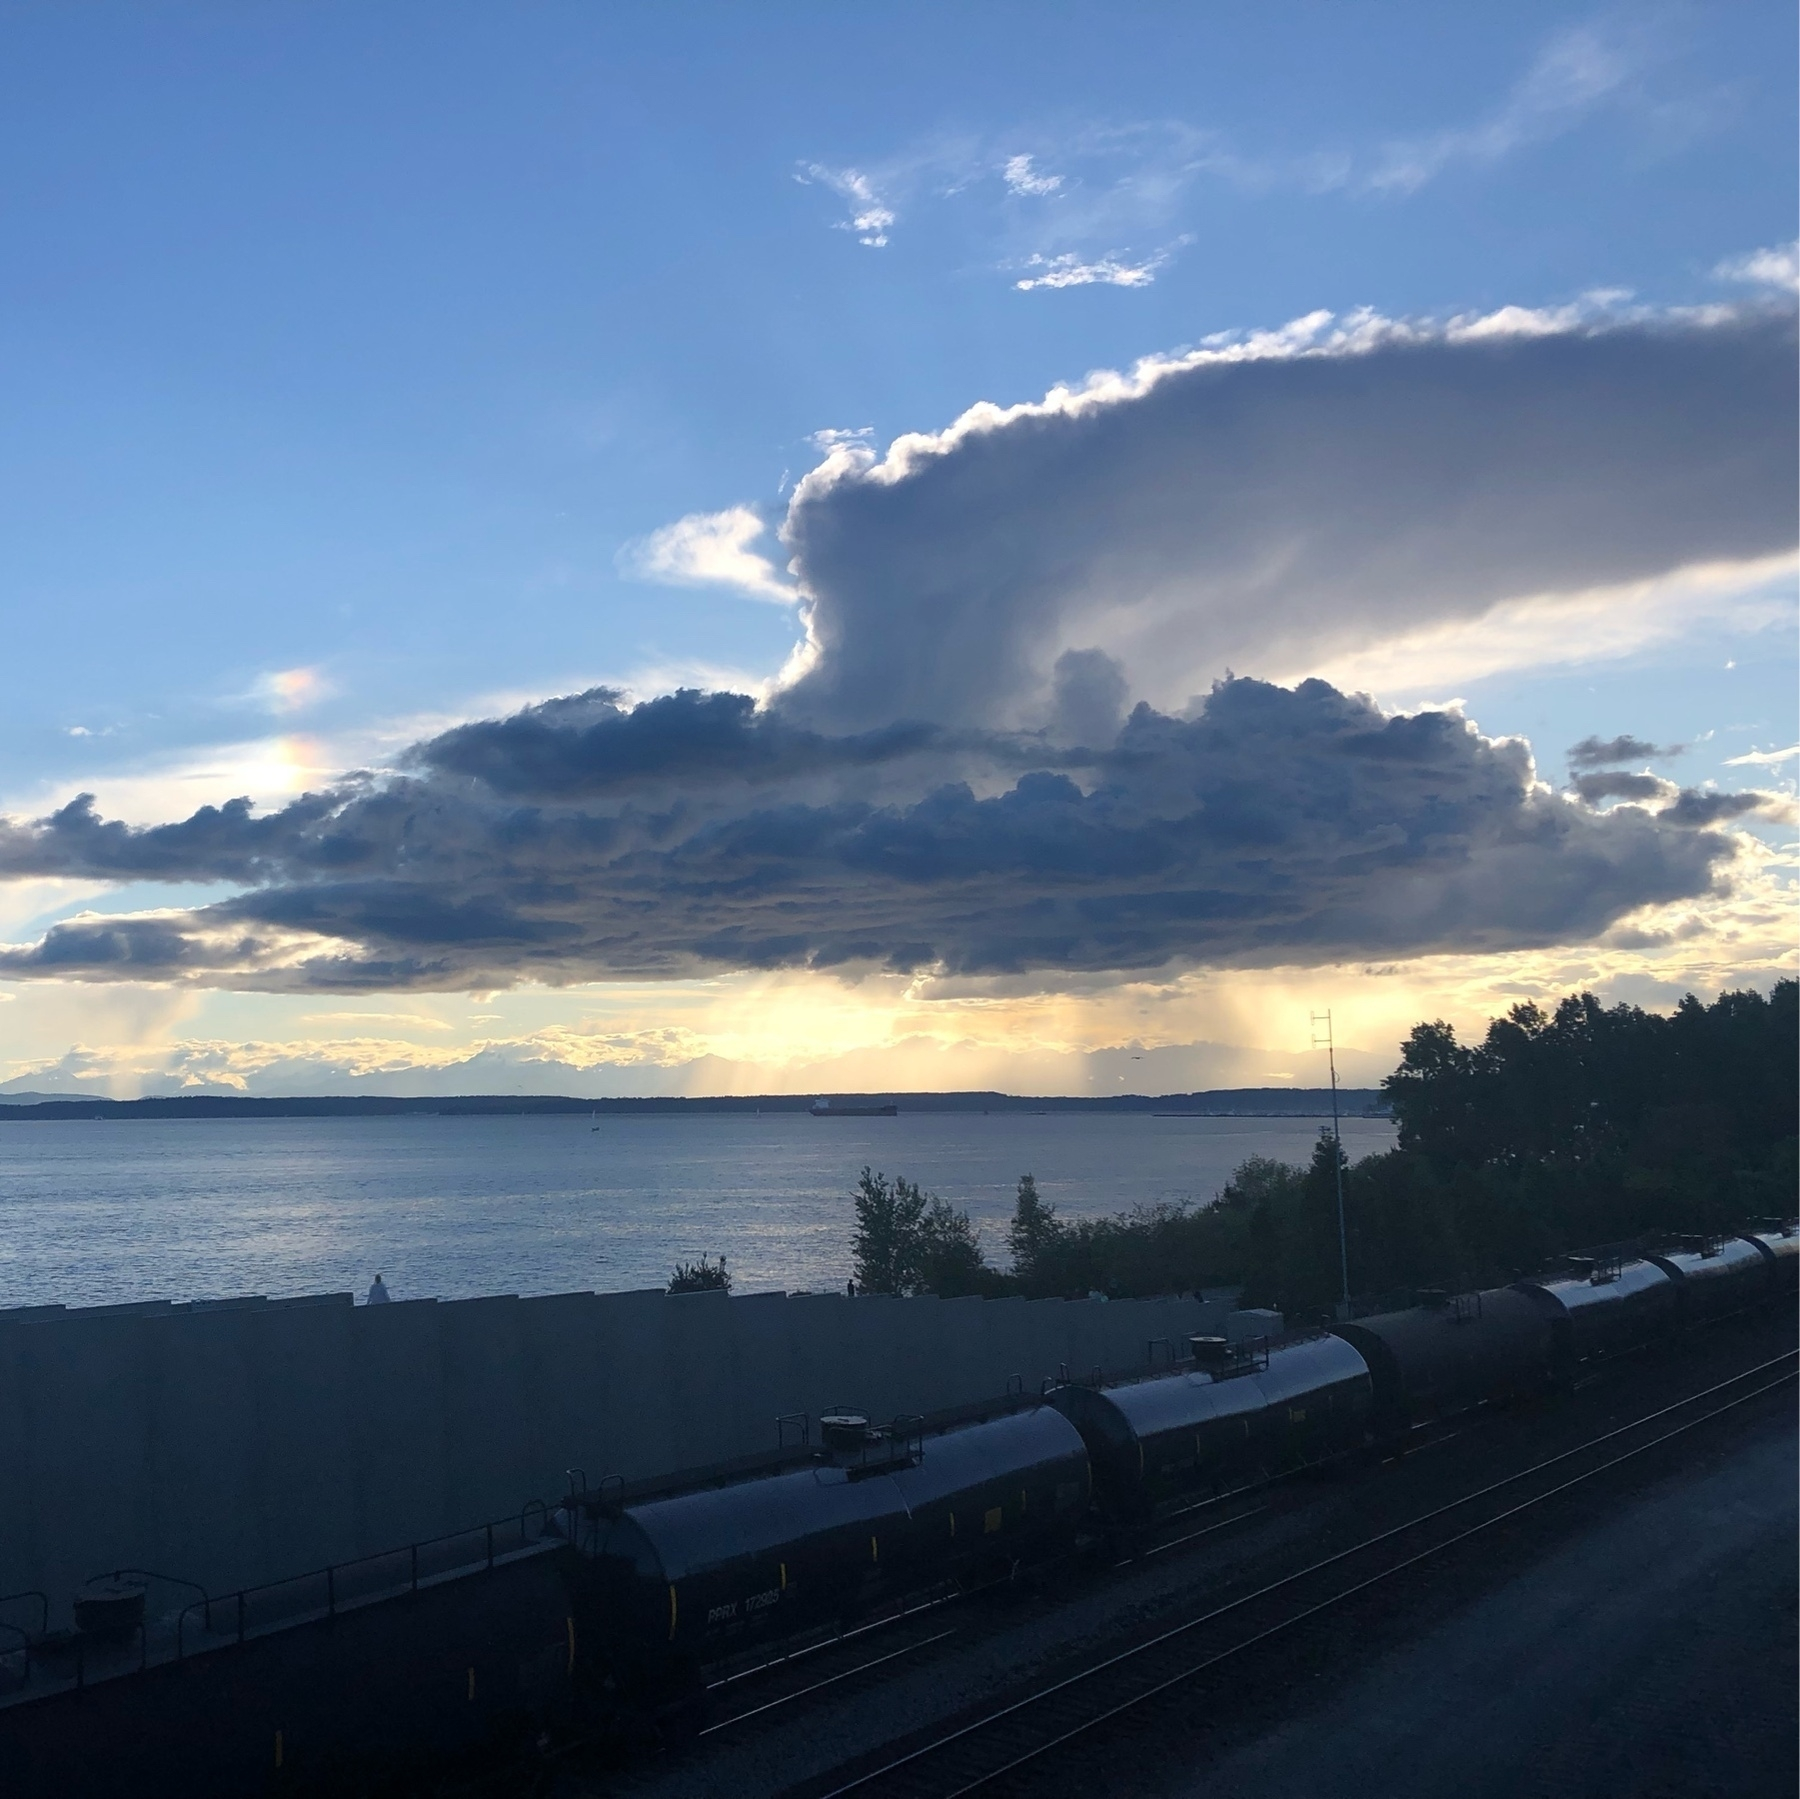 Dramatic silver clouds shaped like an anvil over blue water. An oil train speeds by in the corner of the frame.